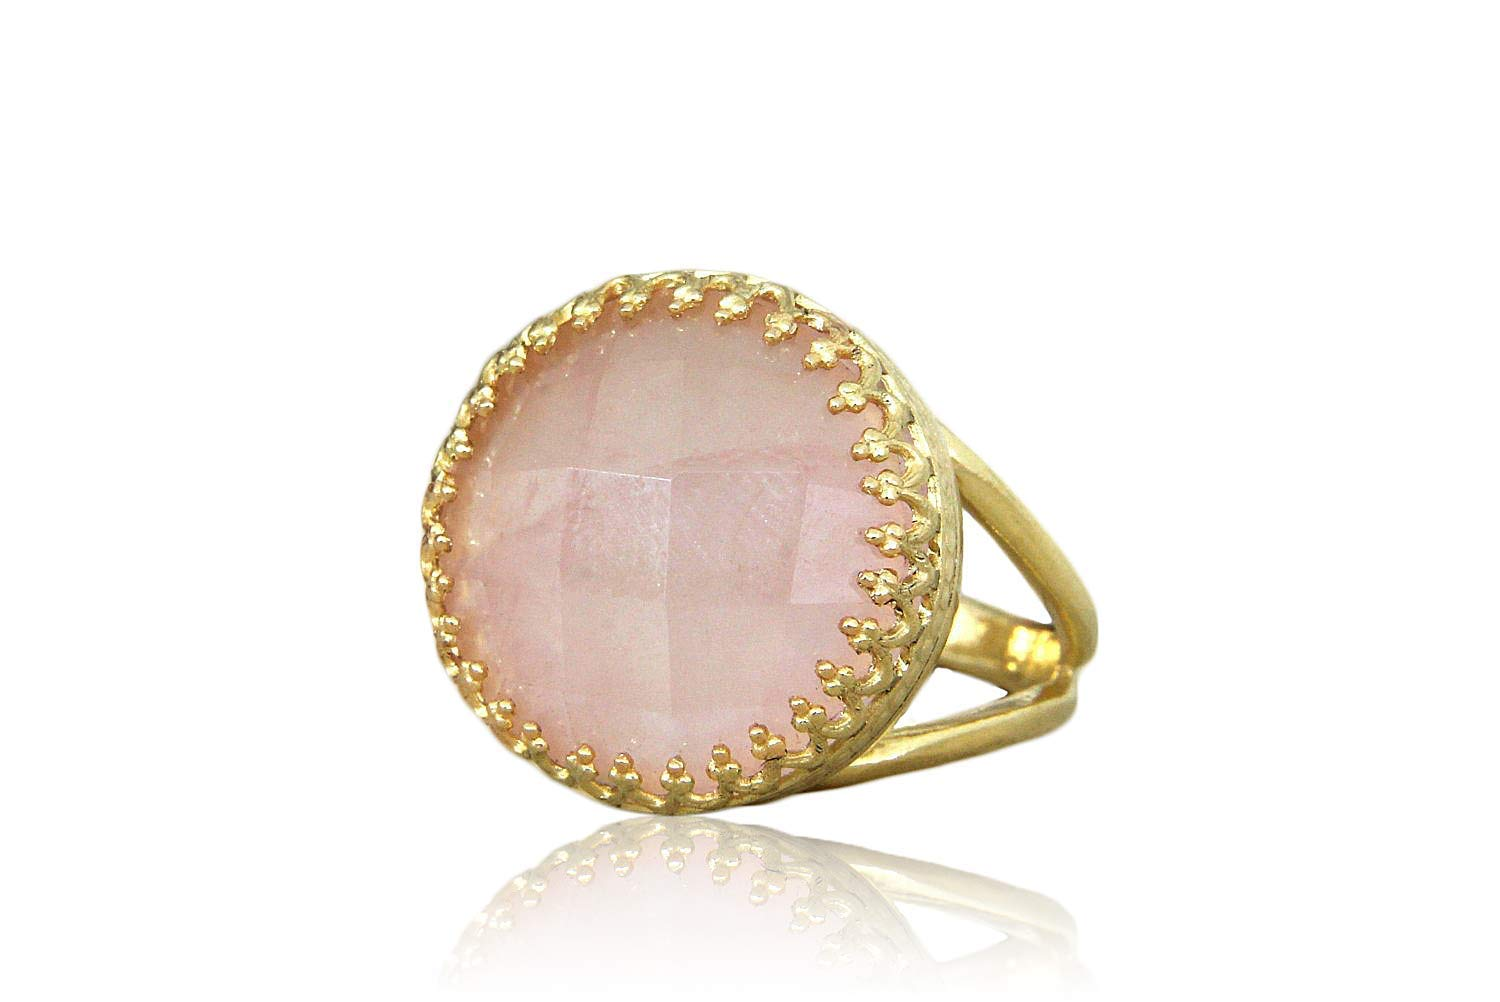 Elegant Handmade Jewelry Birthday Ring Bridal Ring Free Gift Box Casual Ring Sizes 3-12.5 Anemone Jewelry Charming Rose Quartz Ring in 14k Gold-filled Band Prom Ring